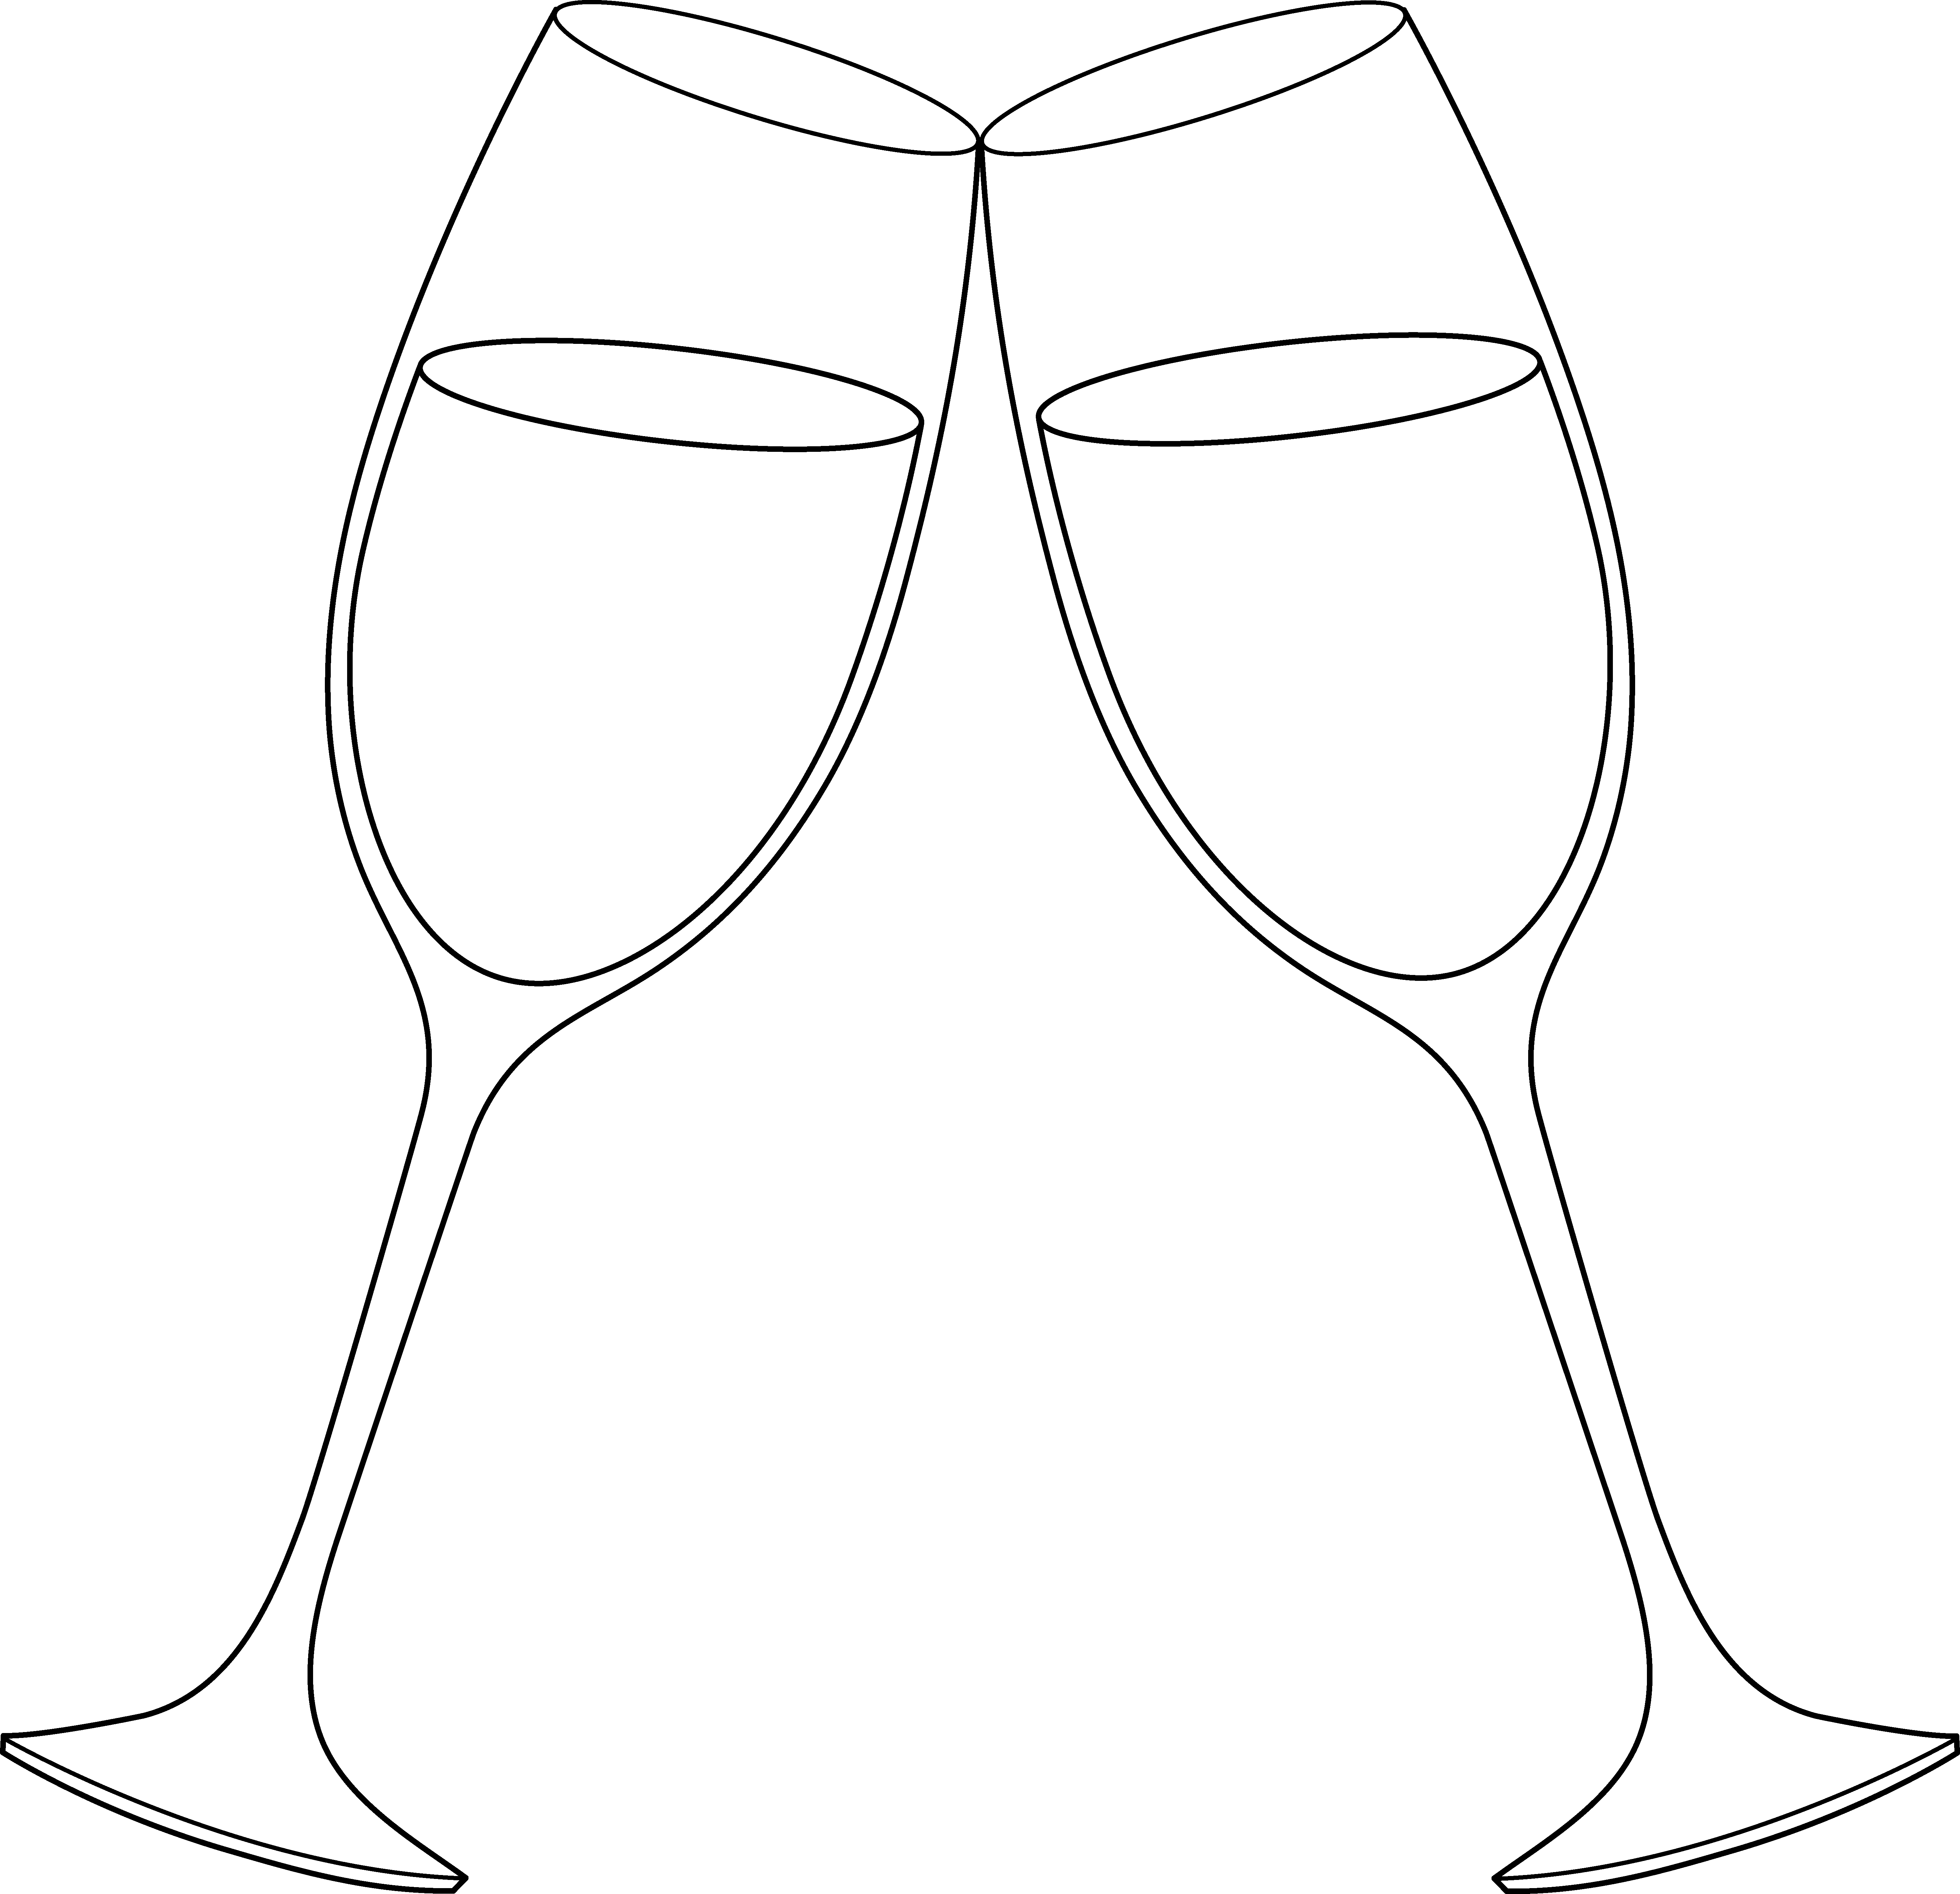 png free Champaign clipart cheer. Wine glass cheers designs.